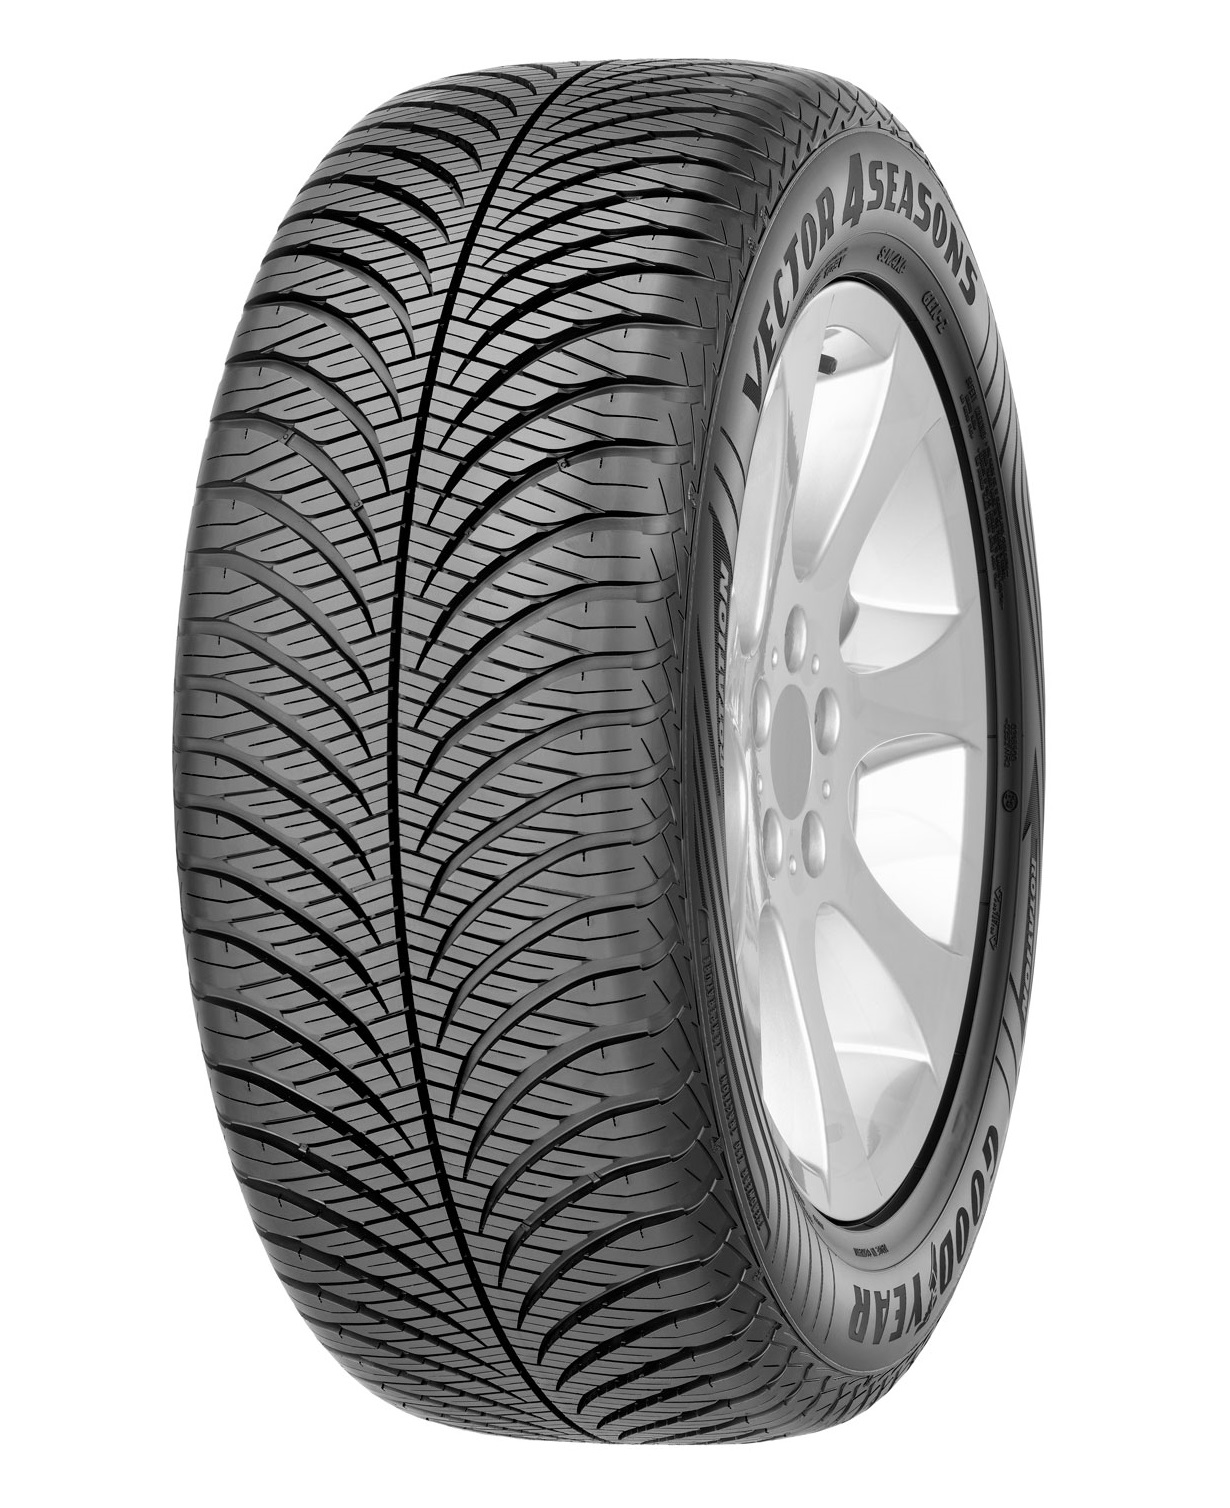 Goodyear Vector 4 seasons 225/65 R17